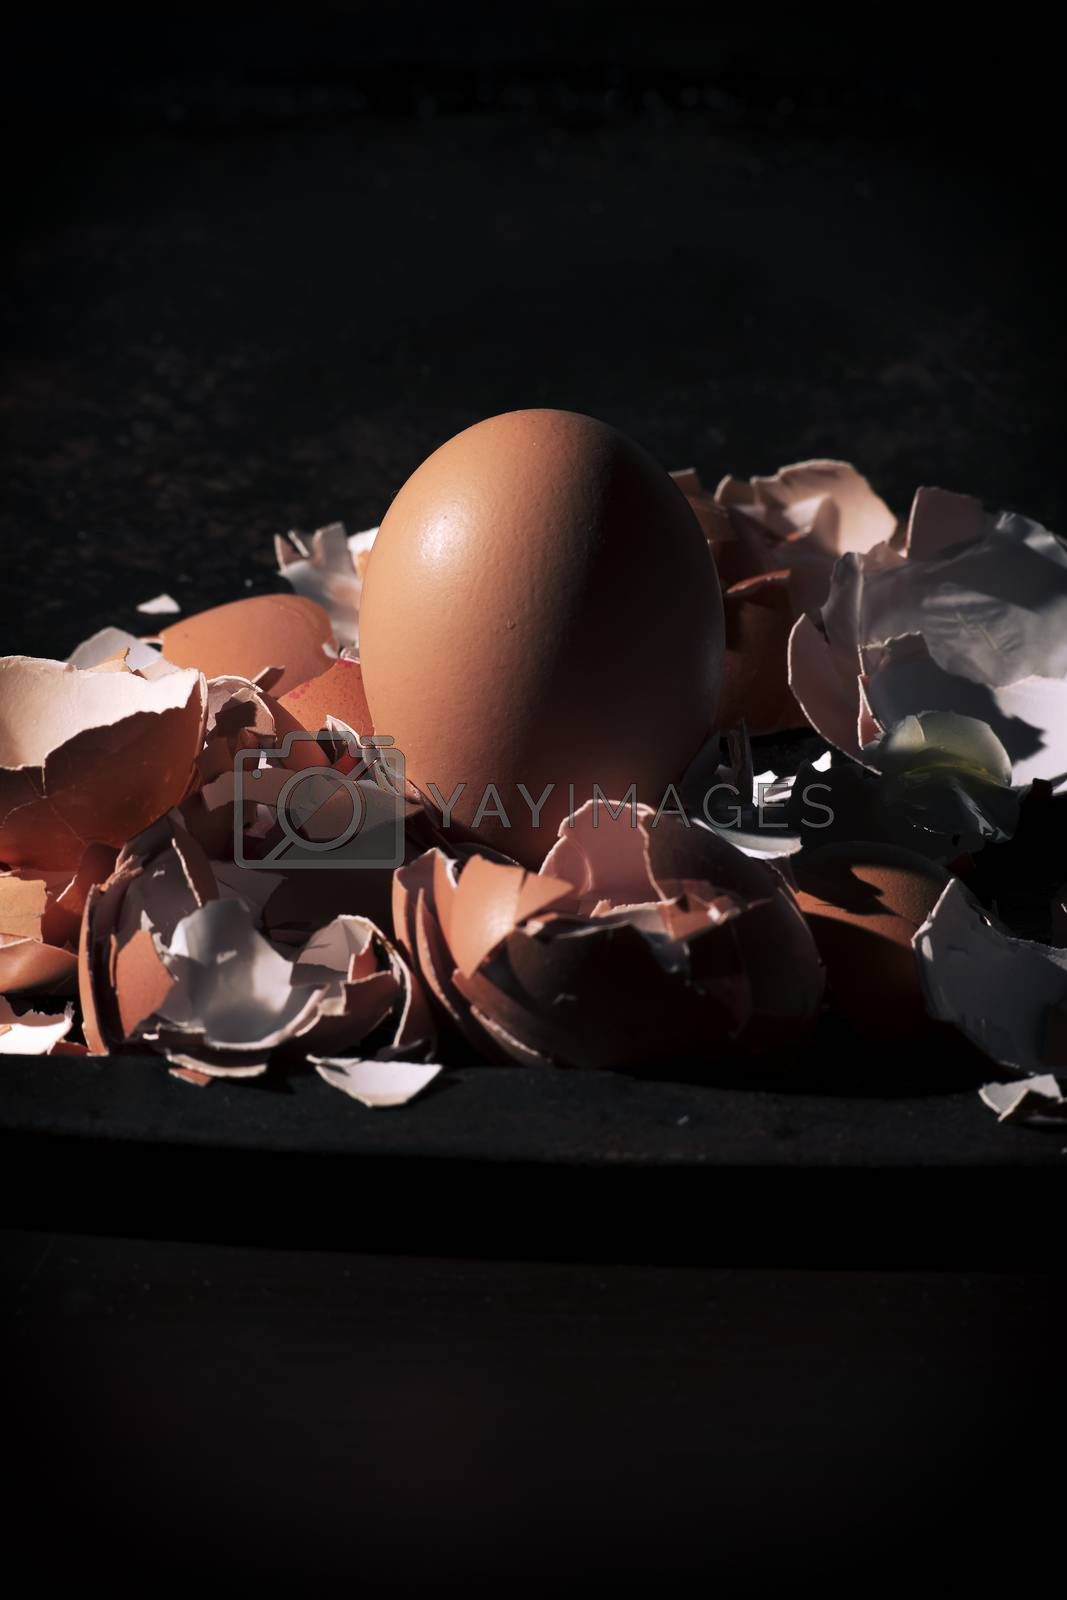 Low light with high contrast lighting of a bunch of eggs whole and crushed shells.